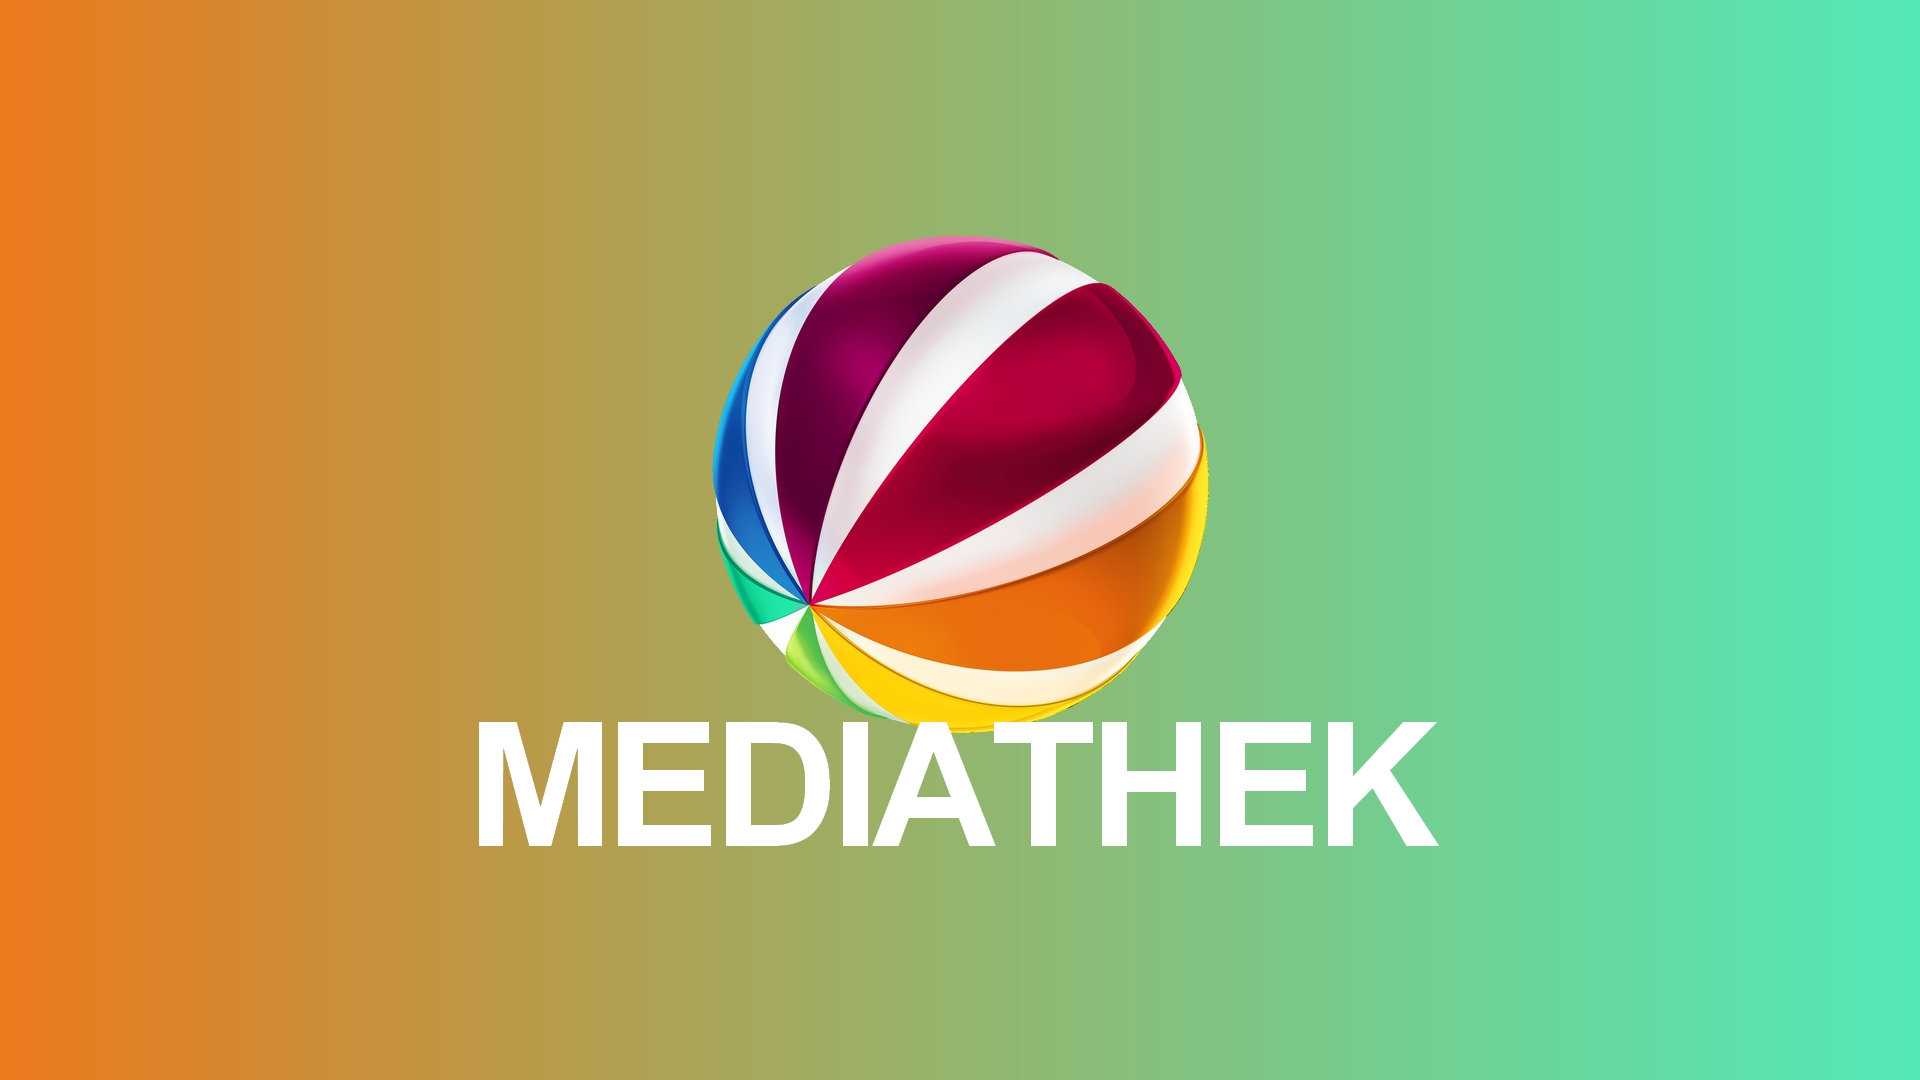 mediathek kabel 1